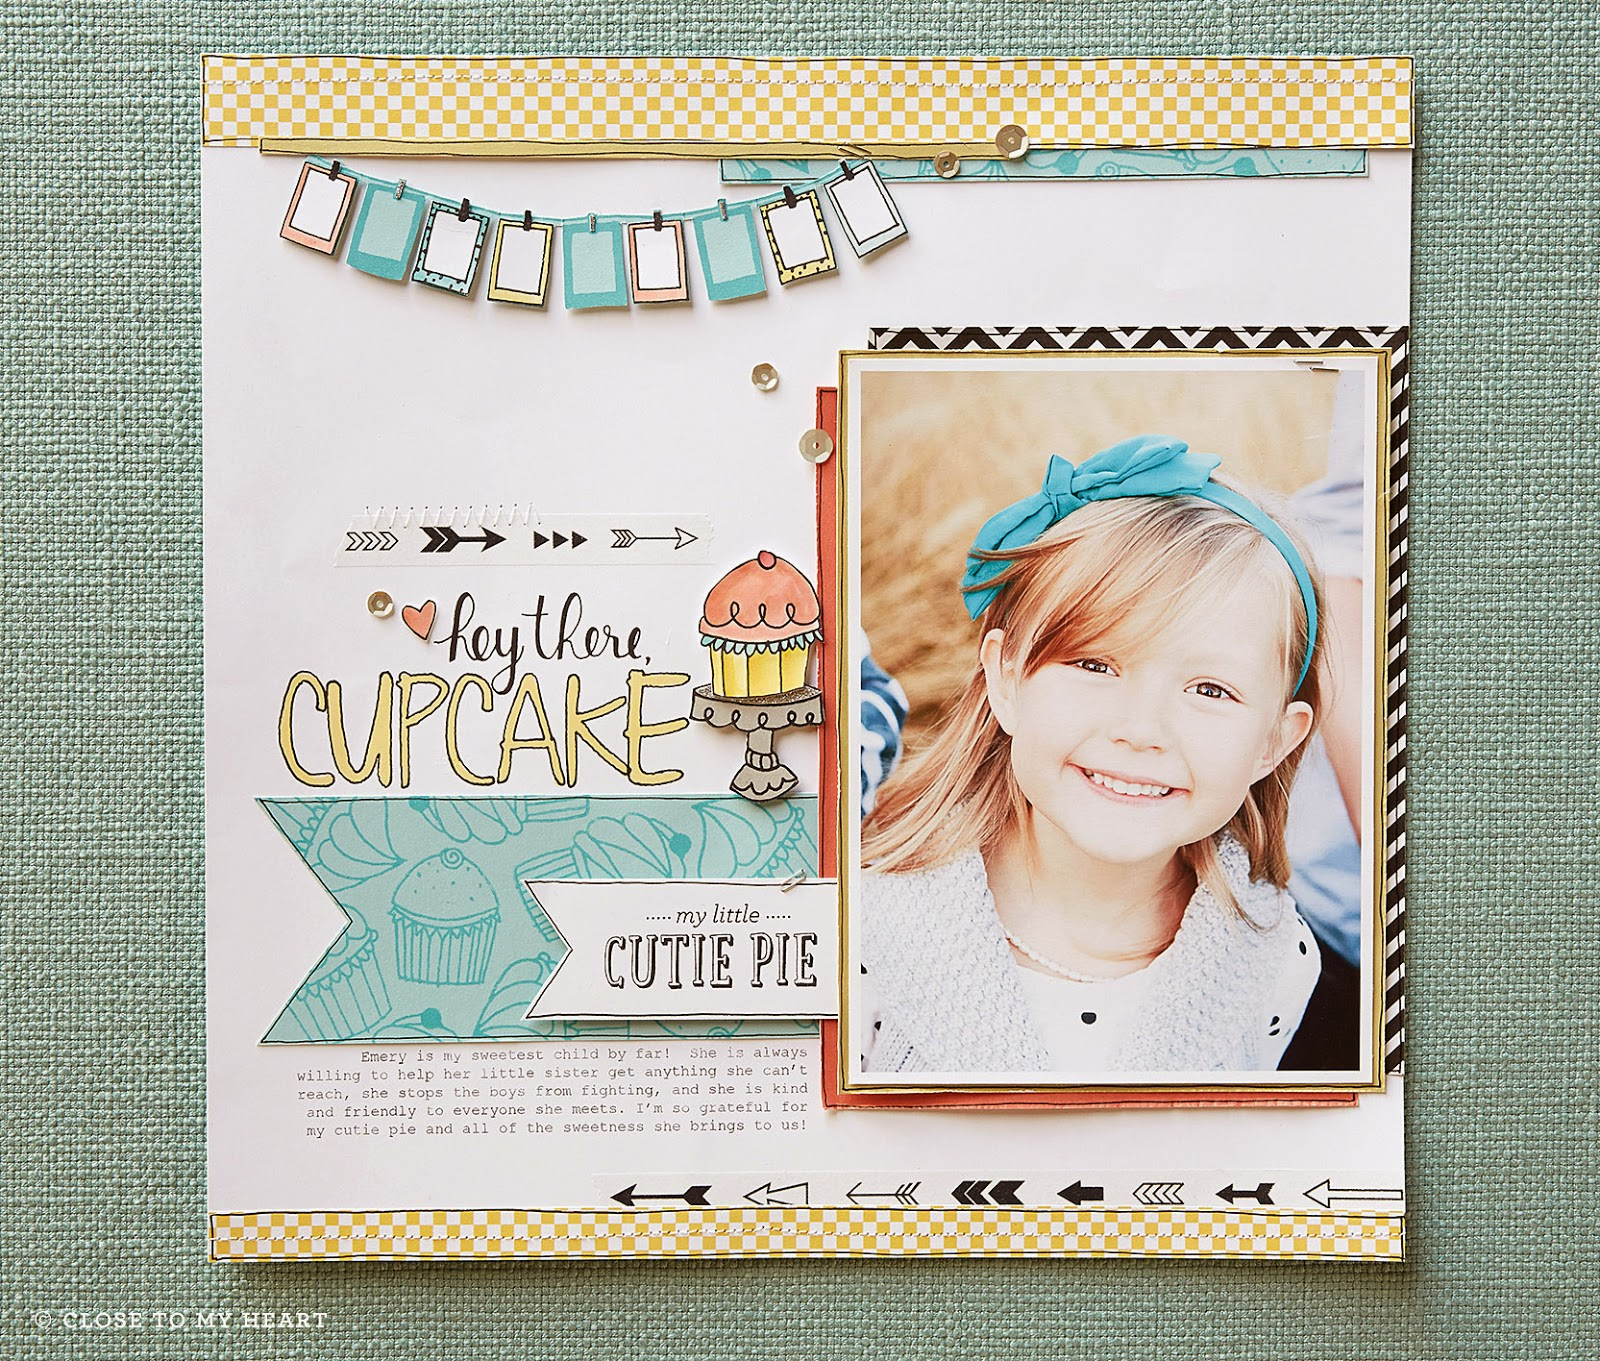 CTMH Cutie Pie Stamp Set SOTM